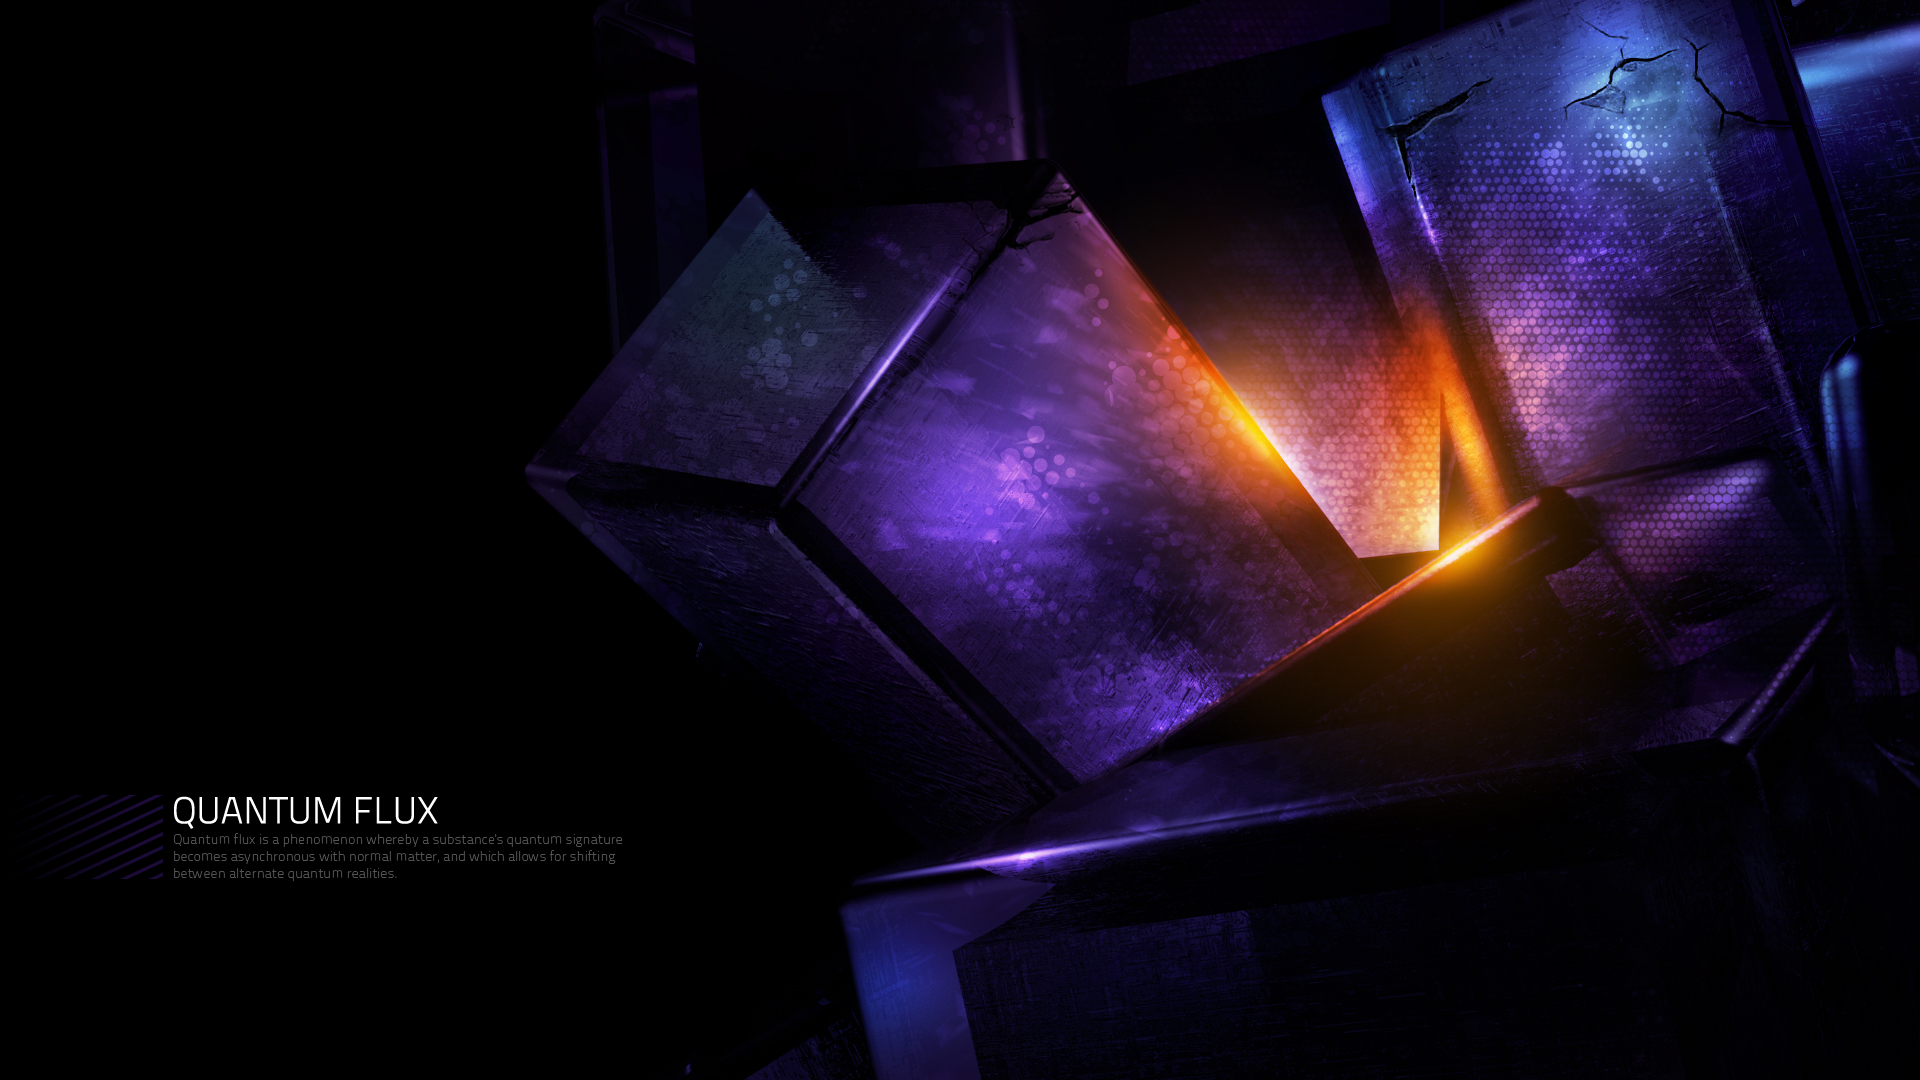 Quantum Flux by obsid1an